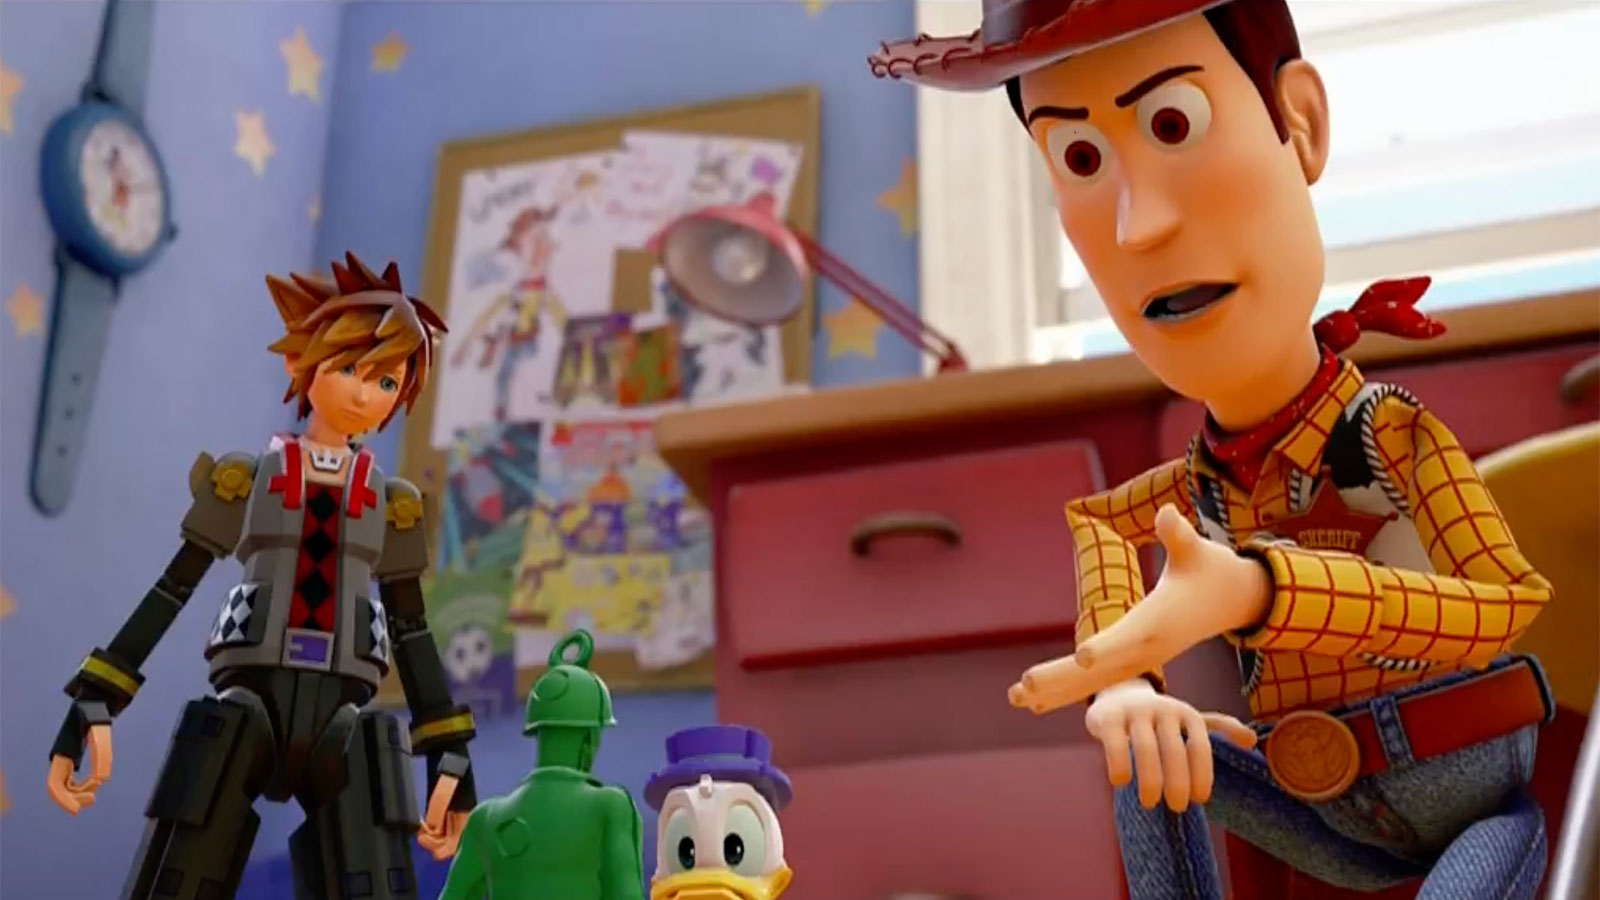 The World Of Toy Story Is Coming To Kingdom Hearts 3